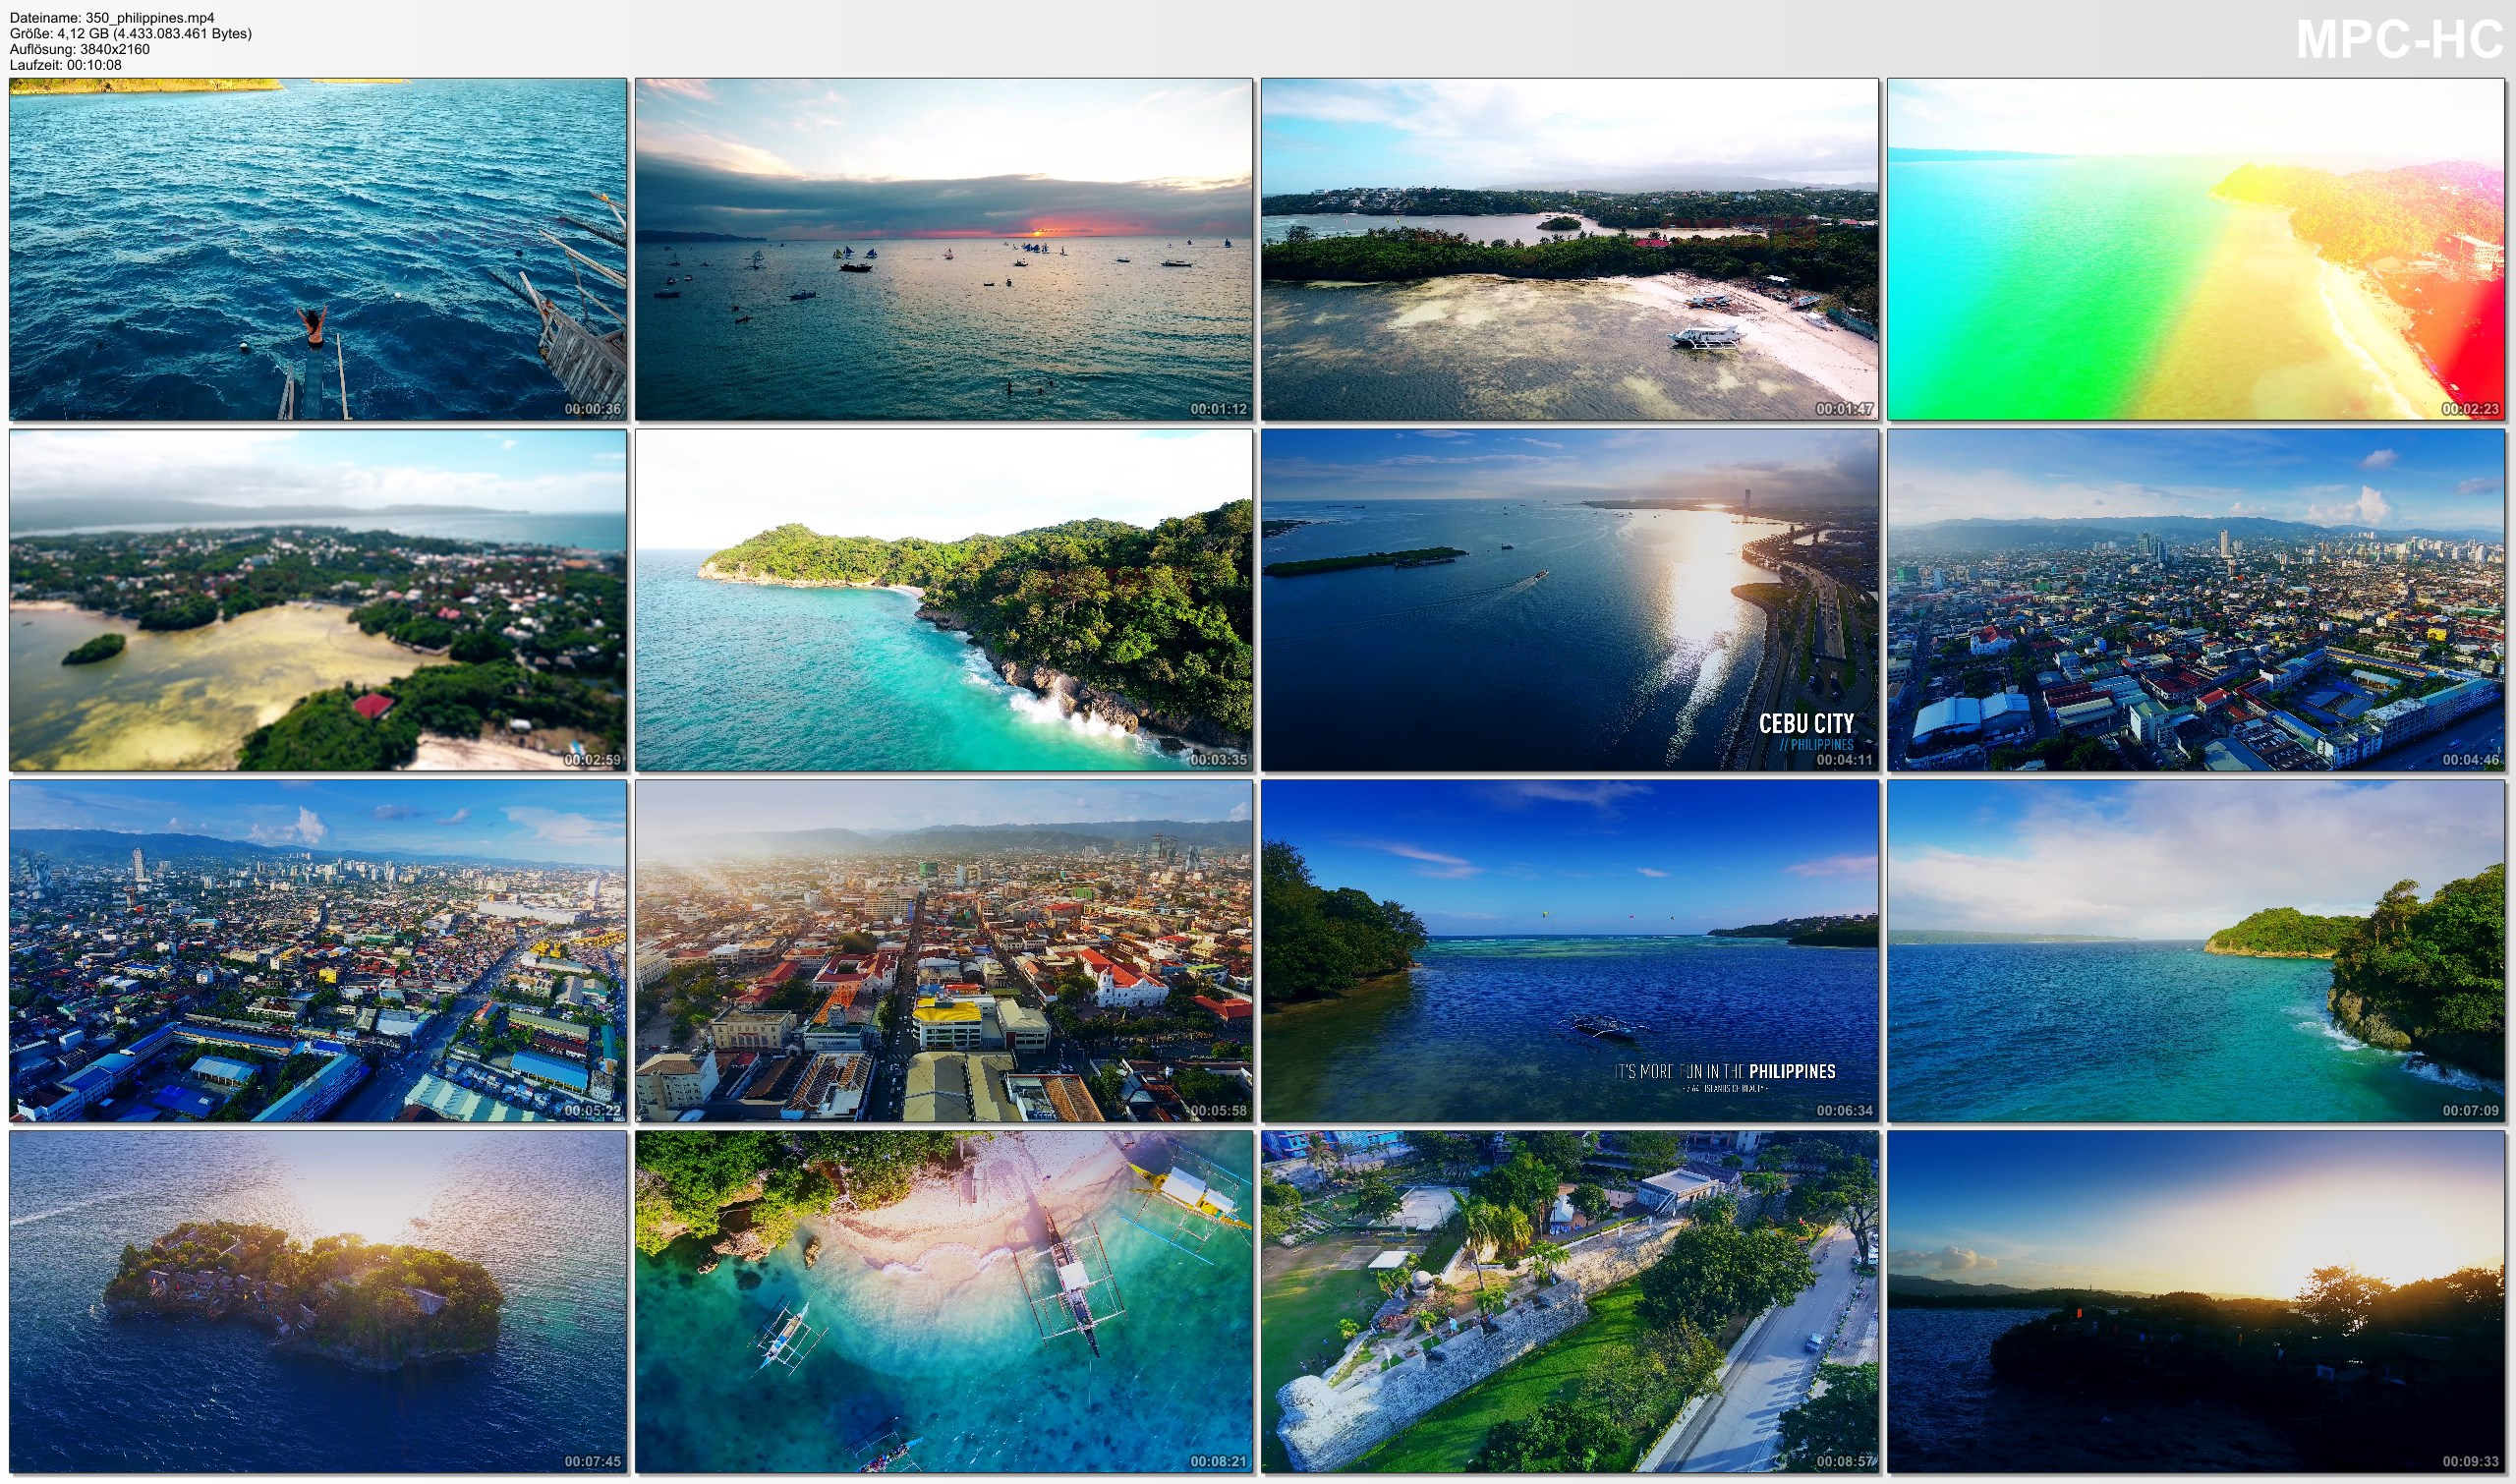 Drone Pictures from Video 【4K】Drone Footage | The Beauty of Philippines in 11 Minutes 2019 | Cinematic Aerial Boracay Cebu KLO